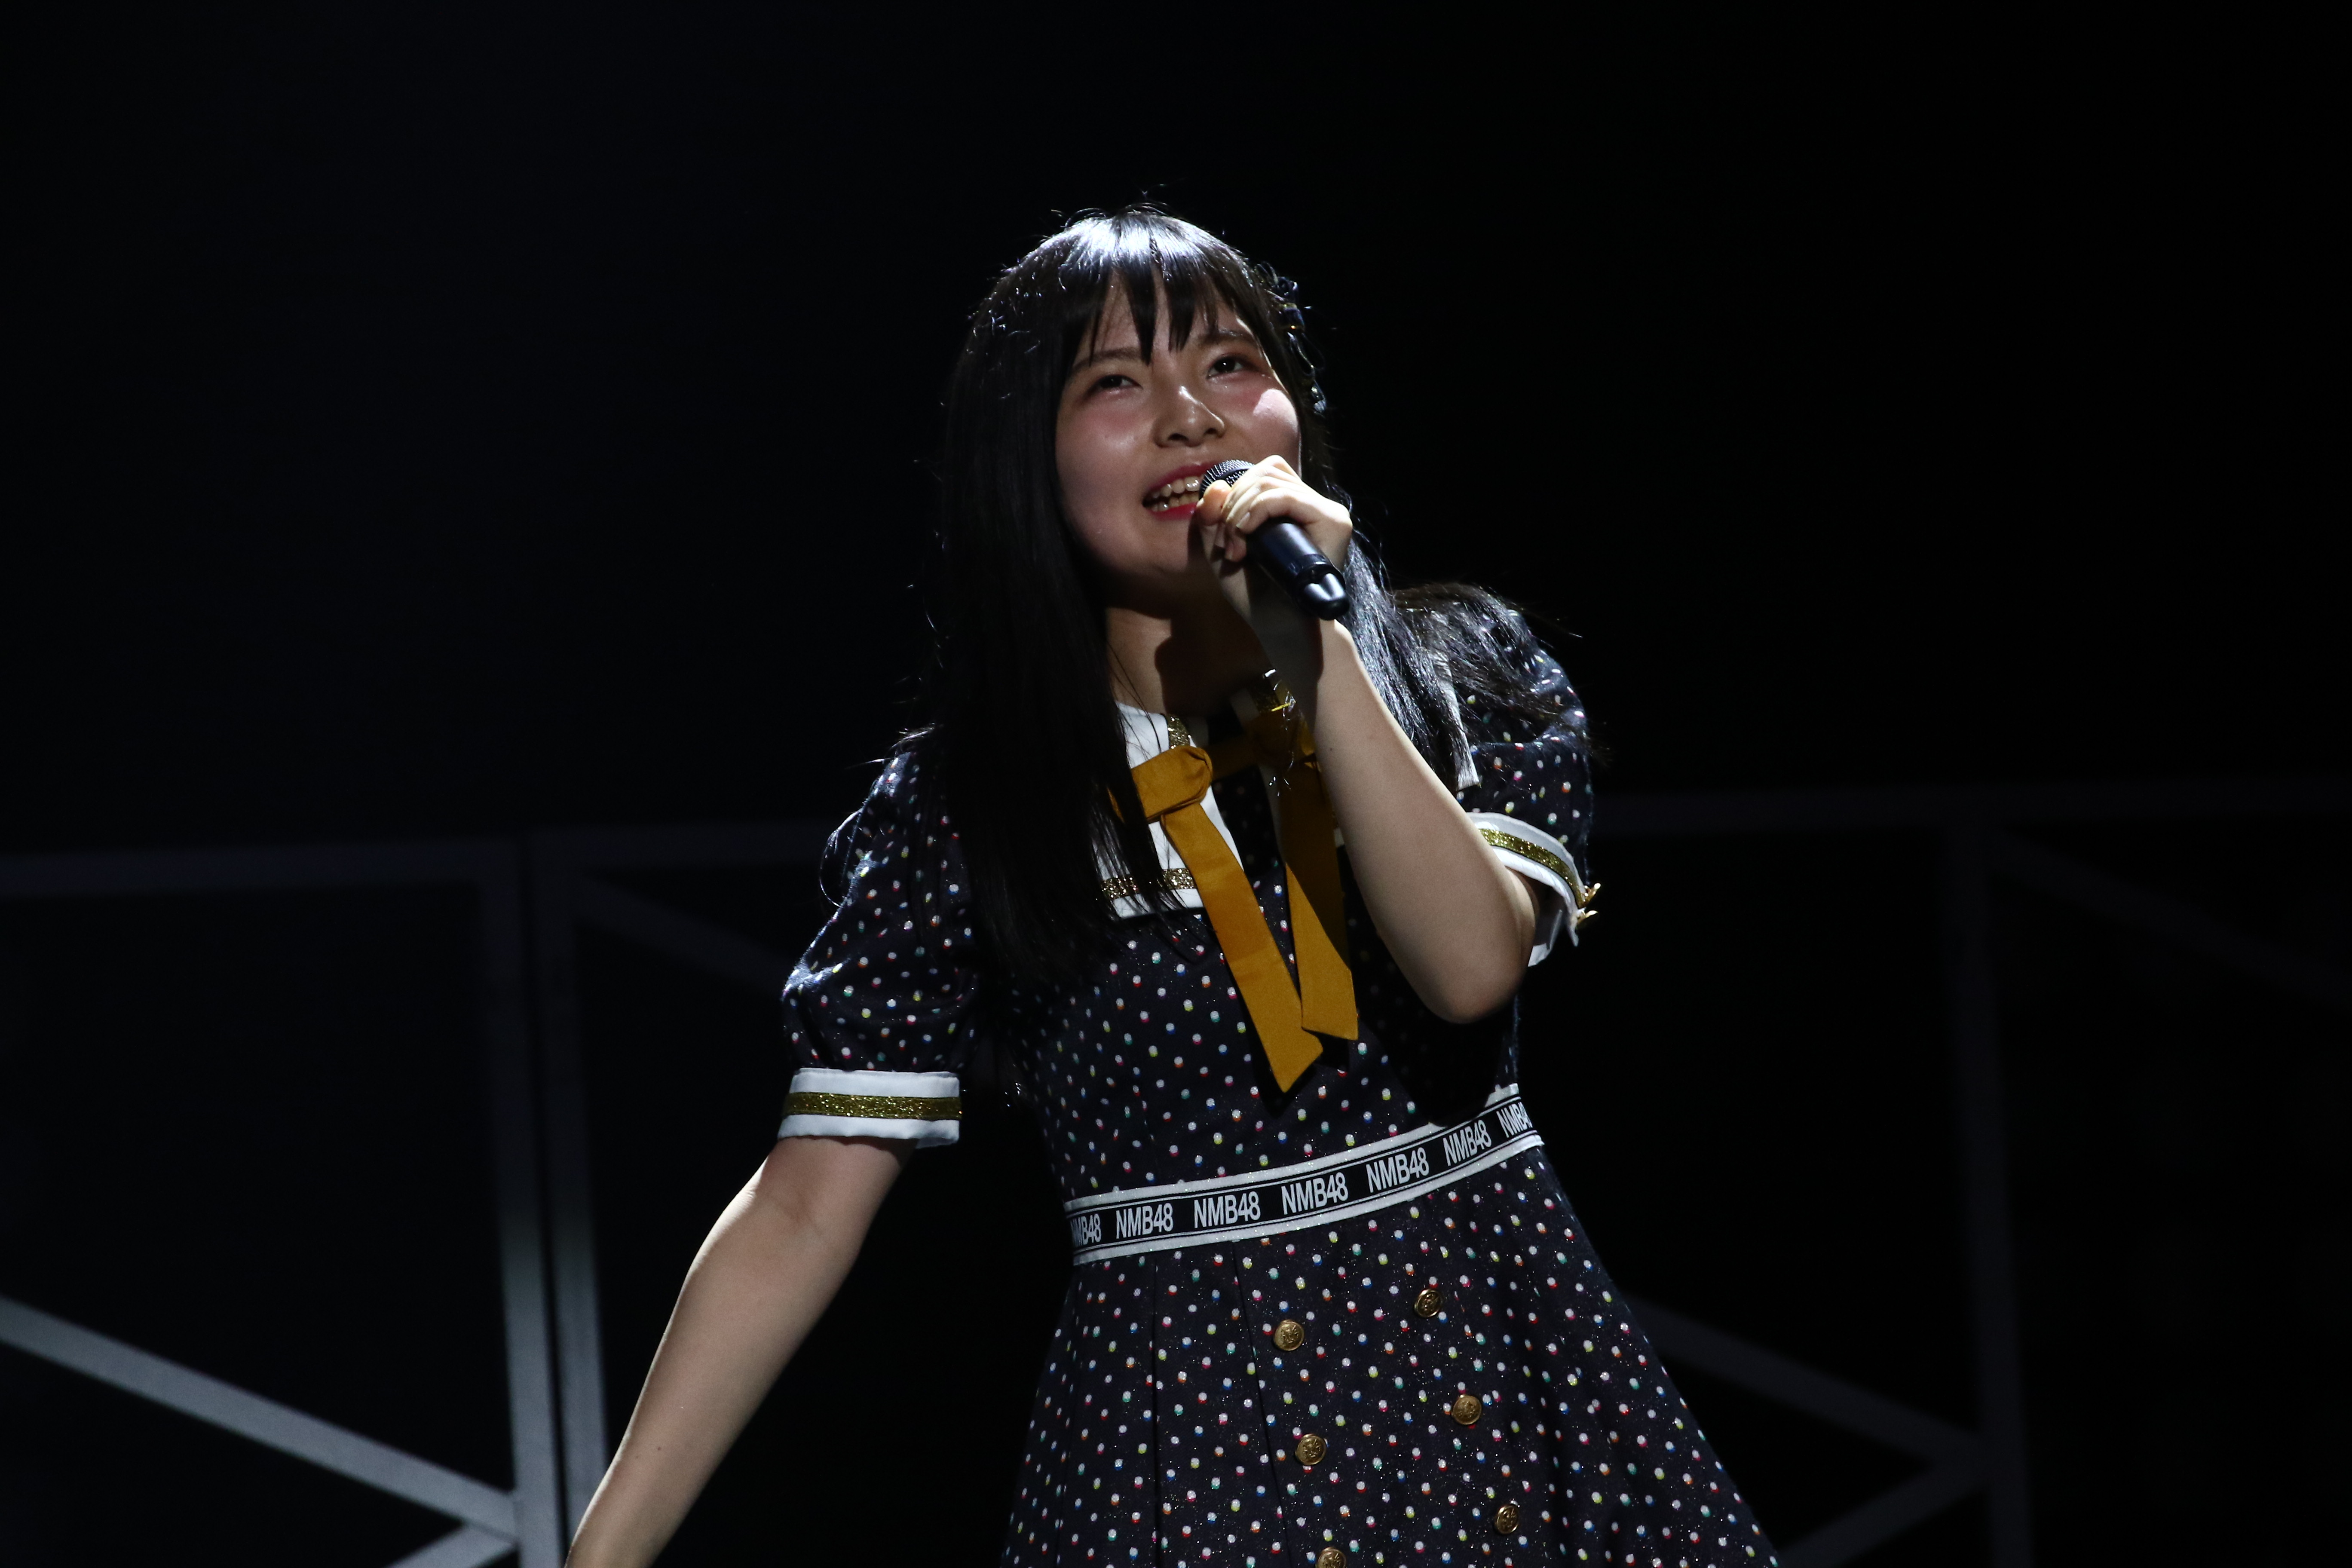 NMB48 LIVE TOUR 2018 名古屋 チームM公演-213